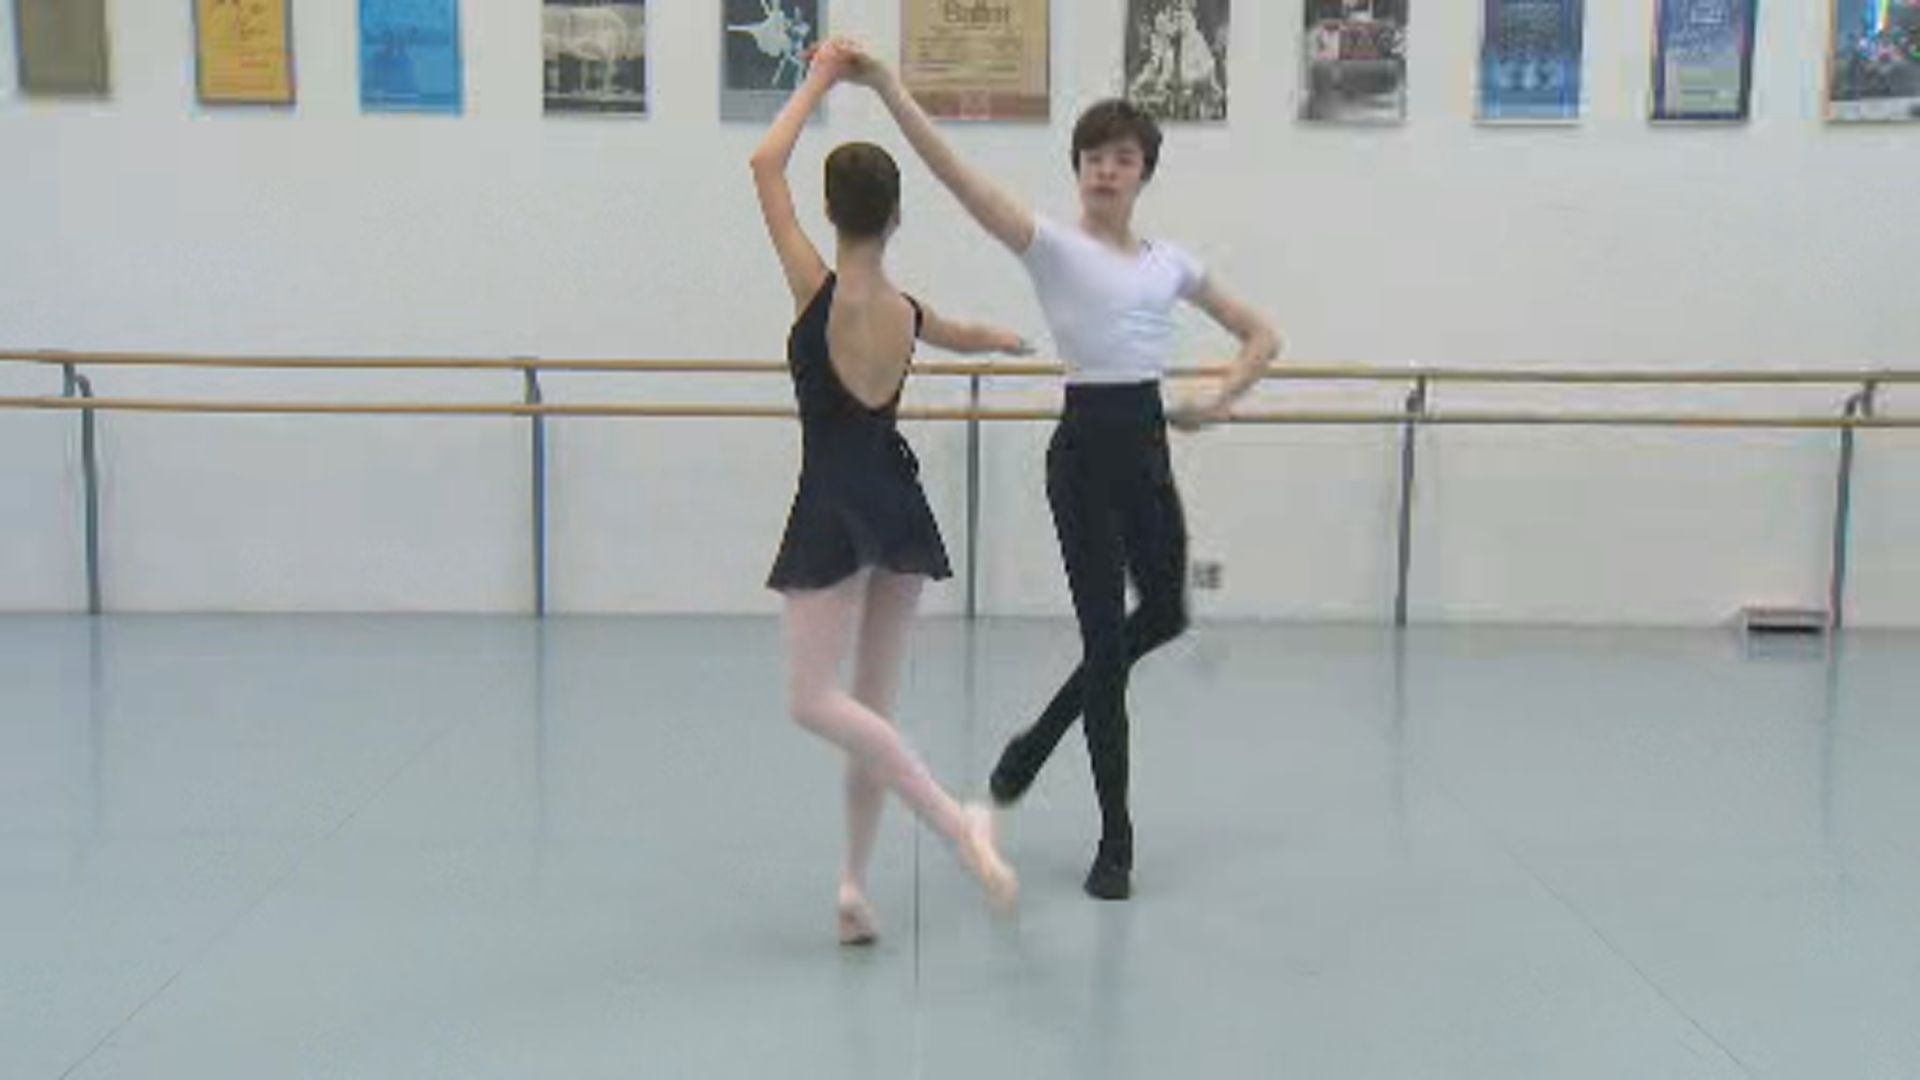 Royal Winnipeg Ballet School offering programs for all skill levels and all ages